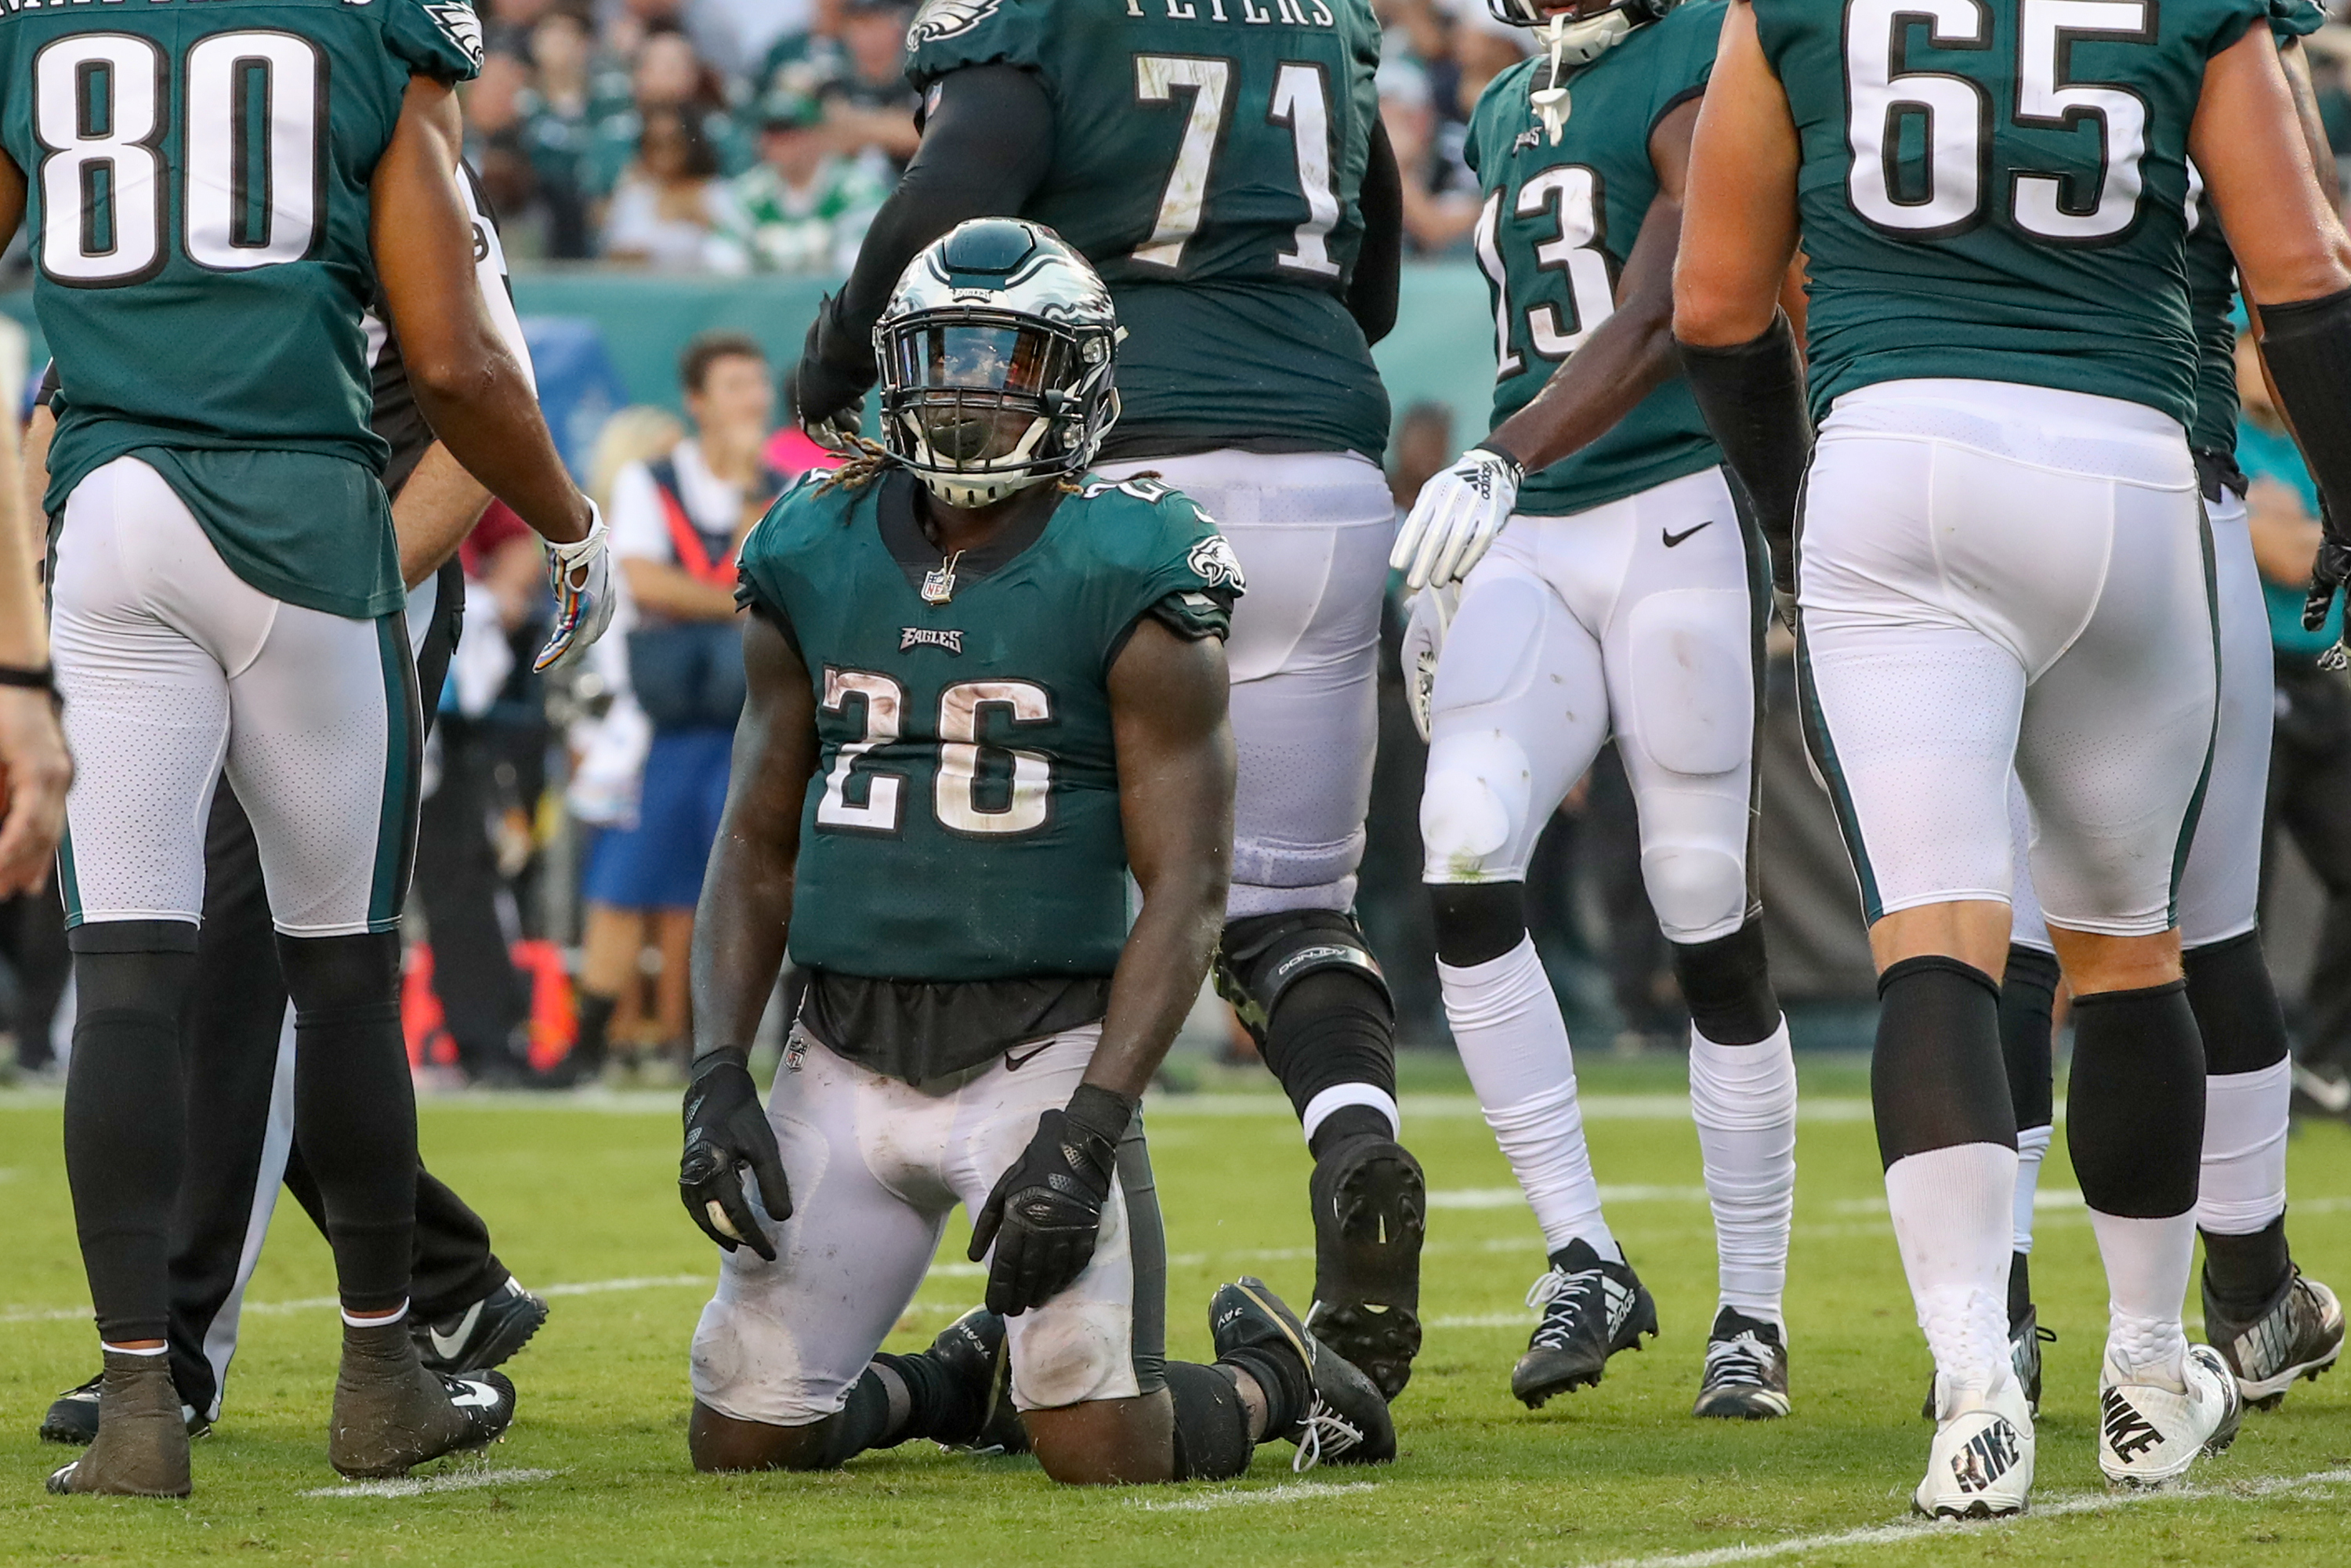 Jay Ajayi can only kneel on the ground and look to the sky after he fumbled the ball inside the 10-yard line as the Eagles were looking to score in the third quarter.